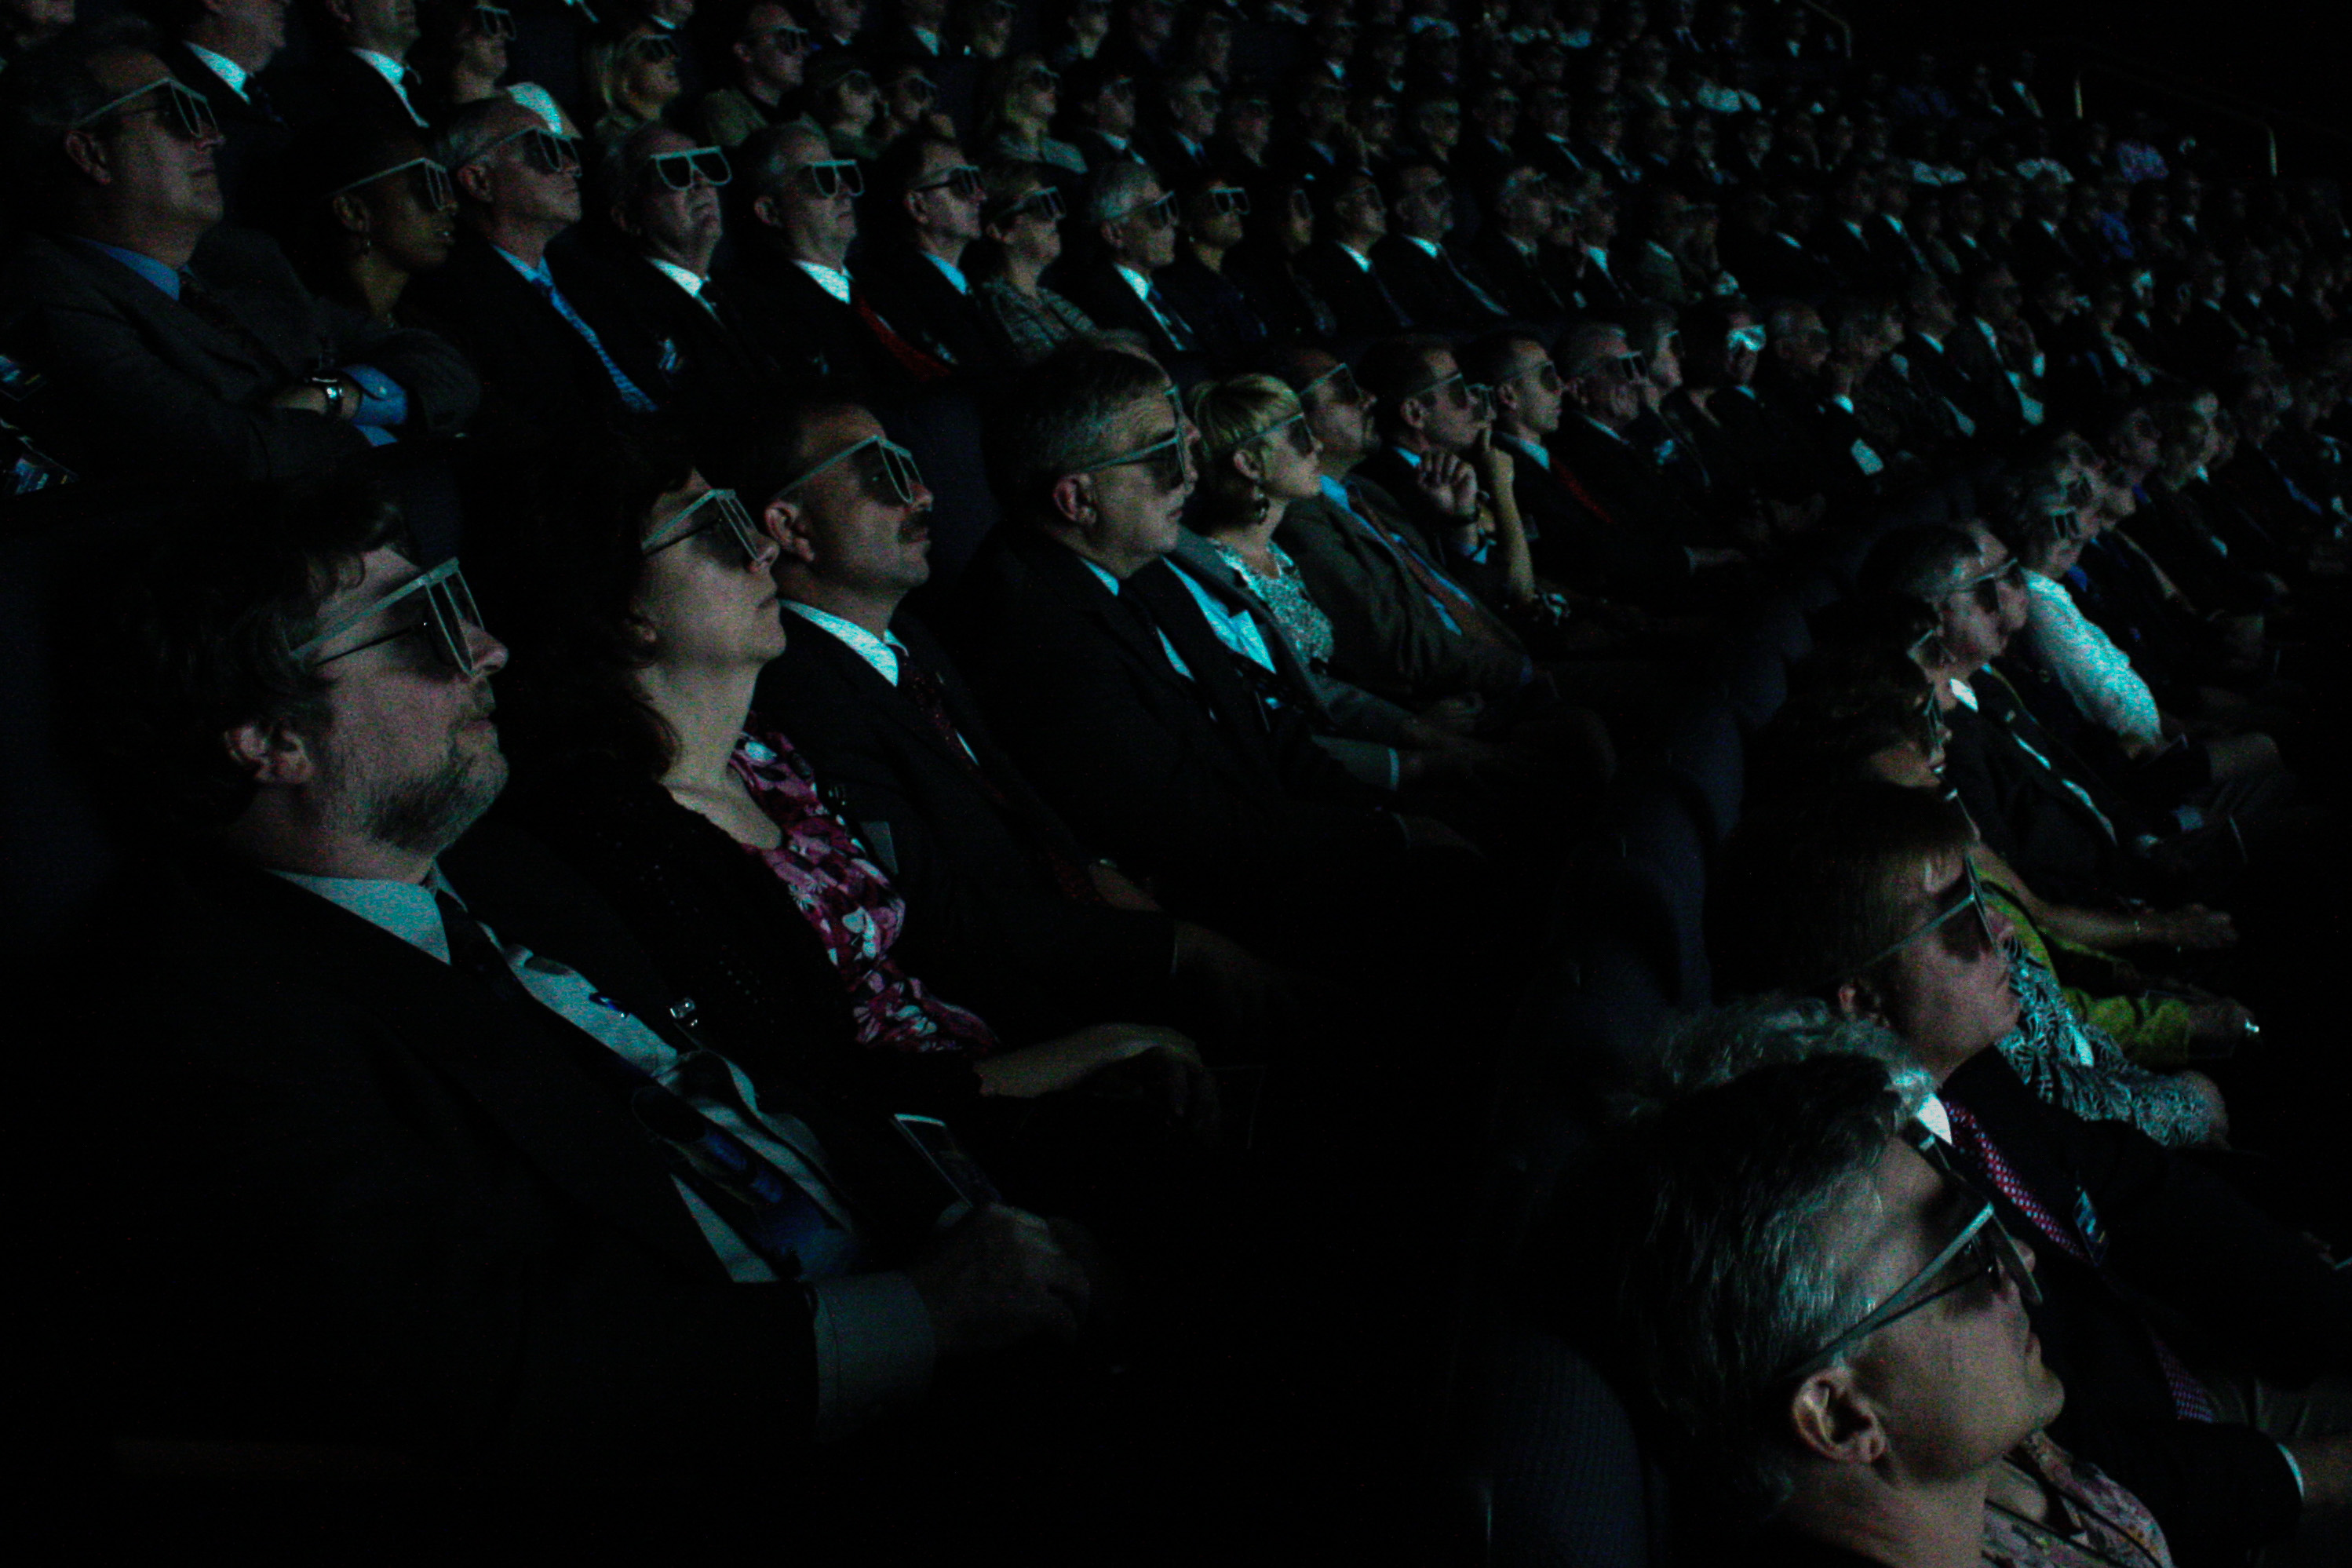 background image, a movie audience wearing 3-d glasses, all well dresssed and facing to the right